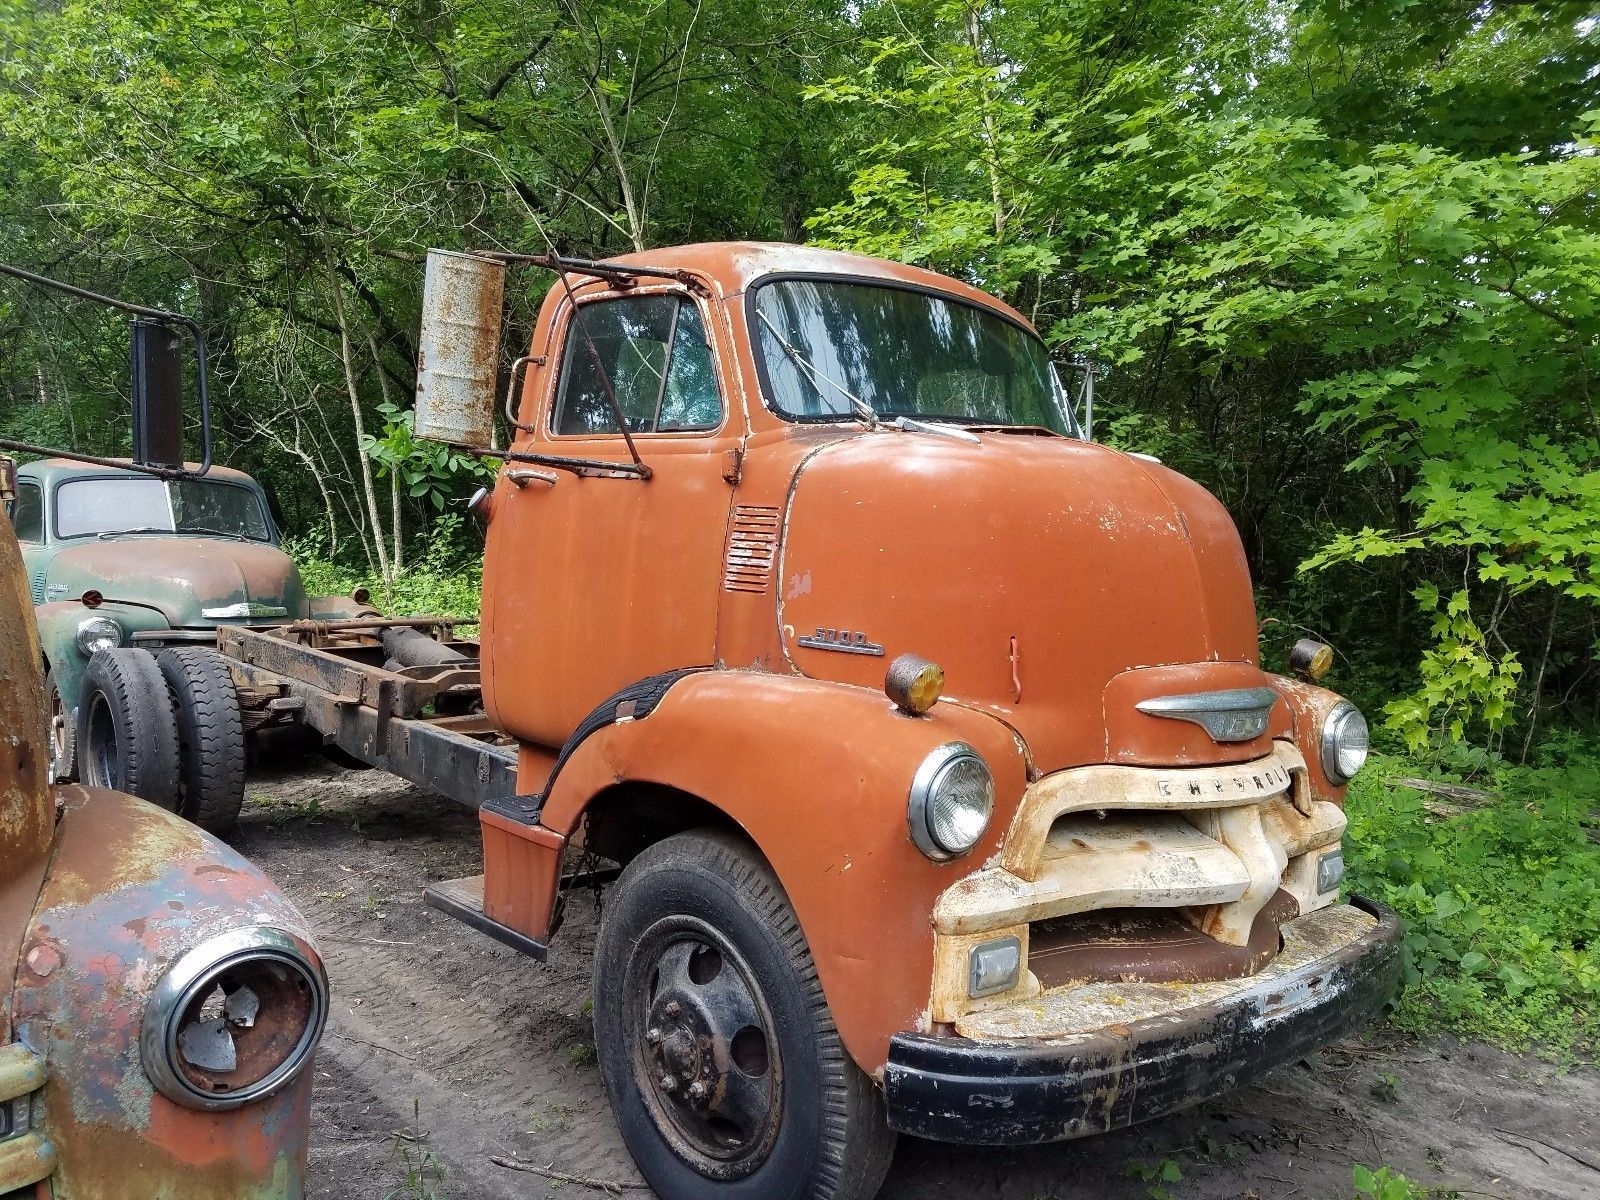 Rat Rods For Sale 1954 Chevrolet Other Pickups 1954 Chevy Coe Cabover Stub Nose Truck Excellent Worn Paint Patina Ratrod